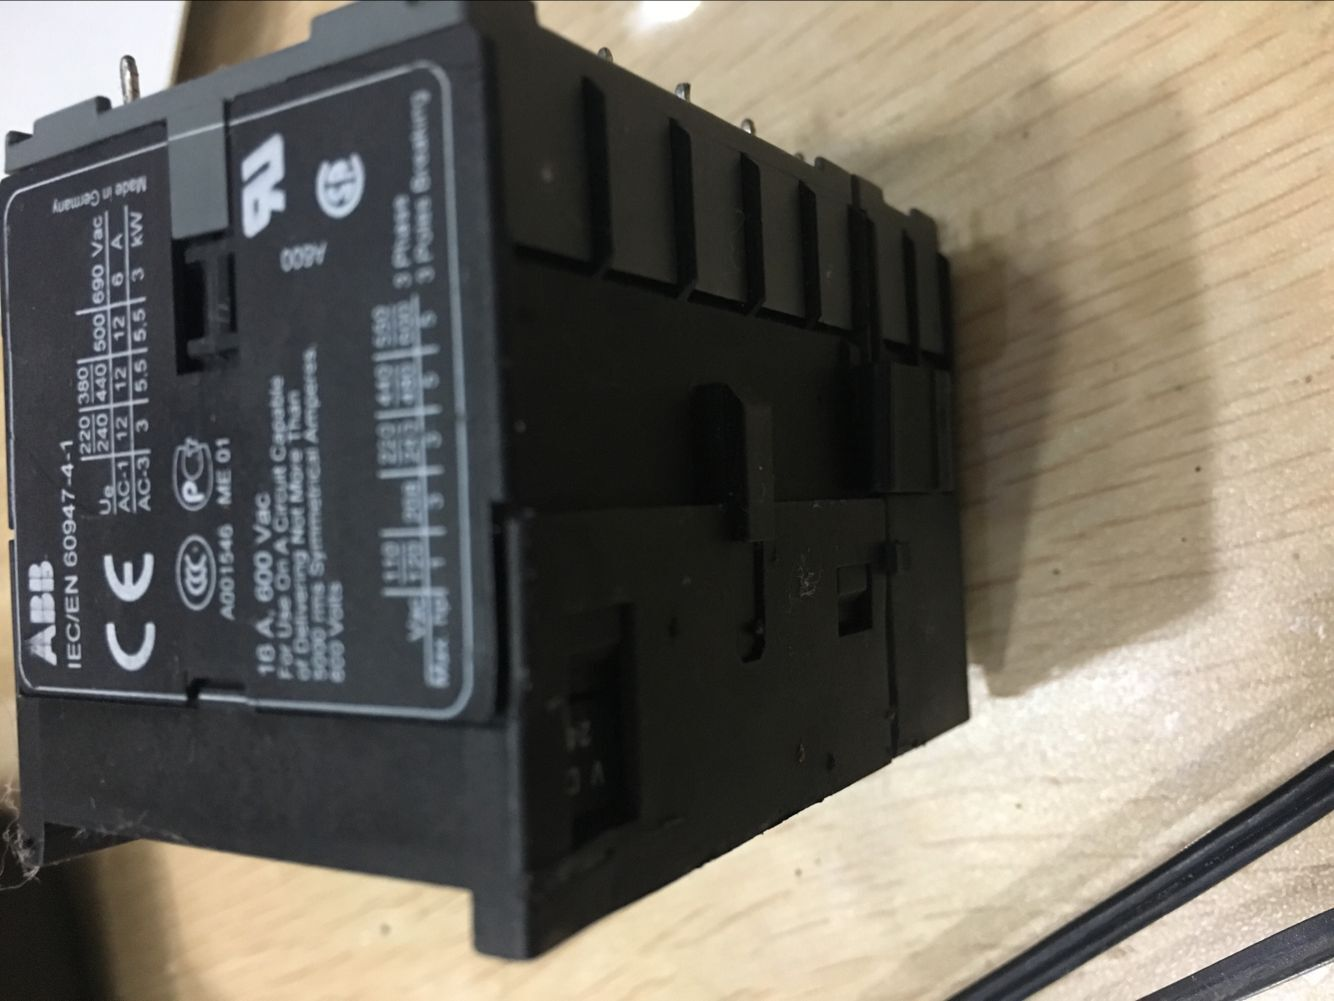 ABB contact type relay BC7-30-01-P-2.4